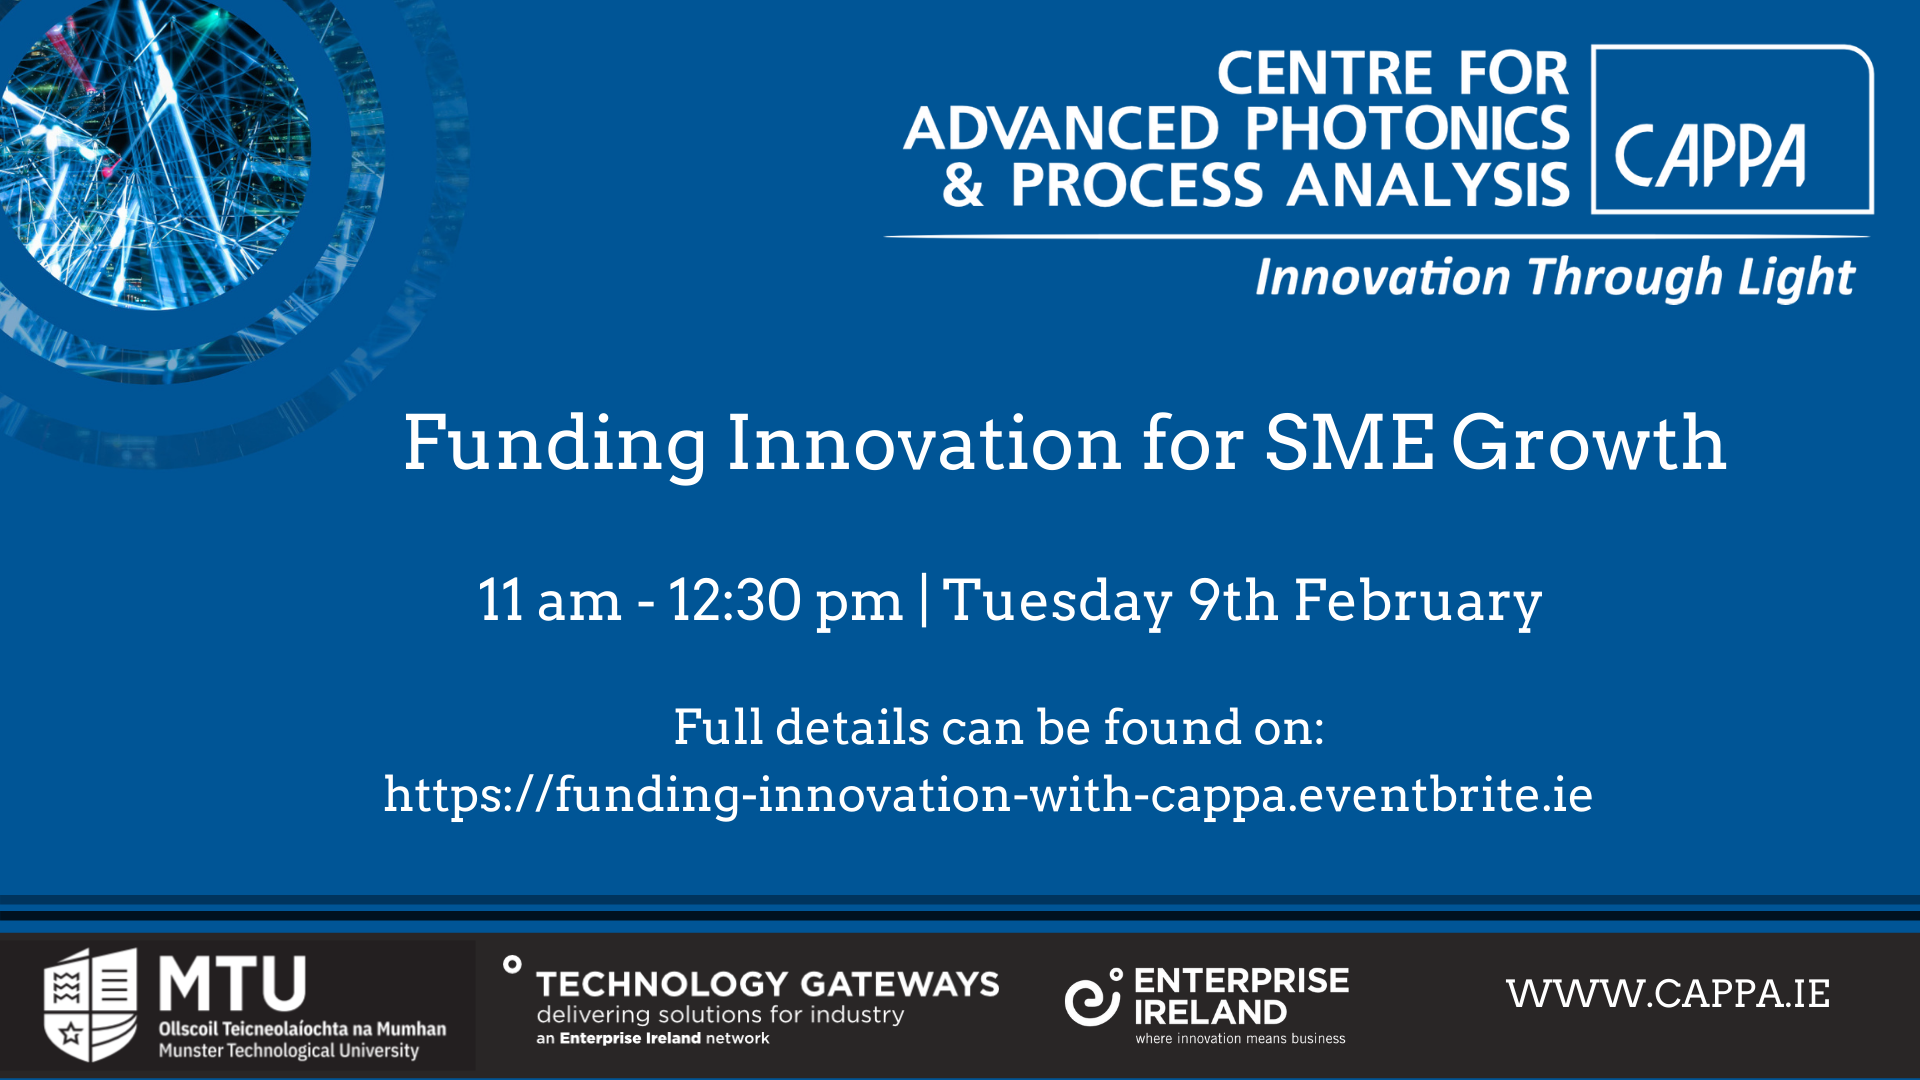 CAPPA Funding Innovation for SME Growth in association with the Hincks Centre - CAPPA